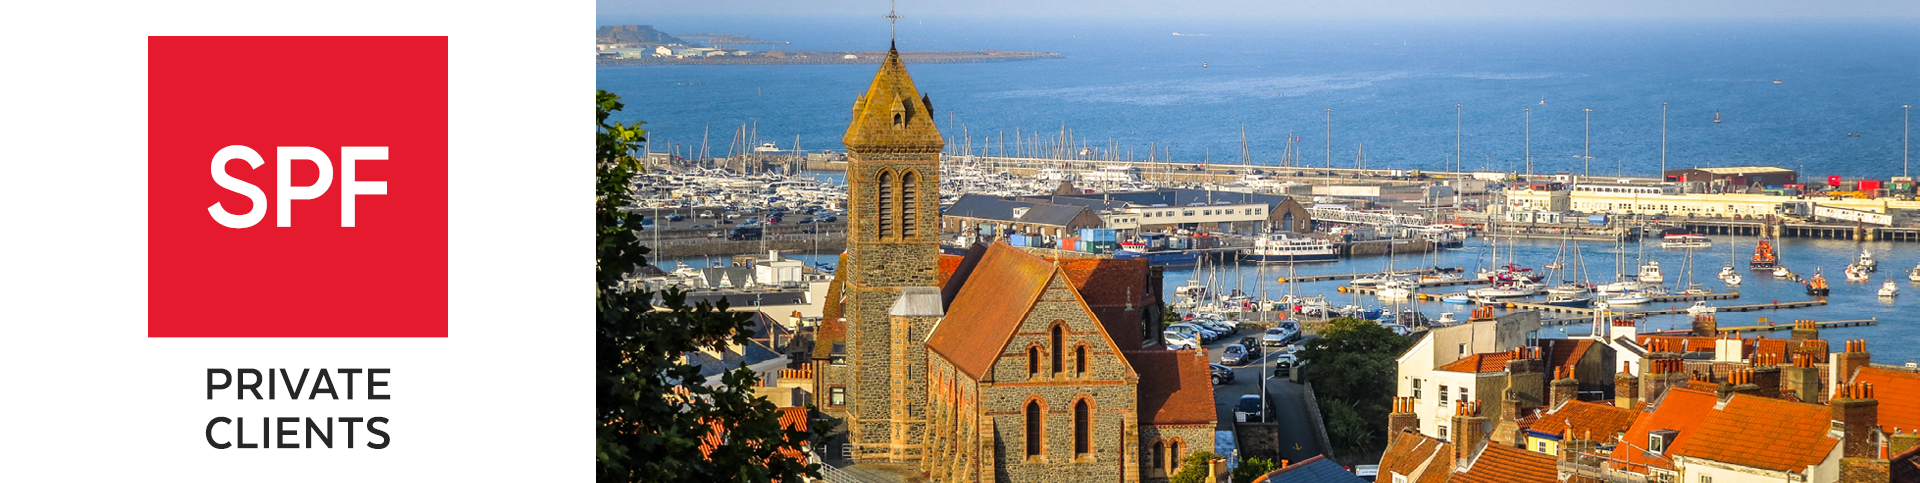 View of the Saint Peter Port at sunrise. Bailiwick of Guernsey, Channel Islands